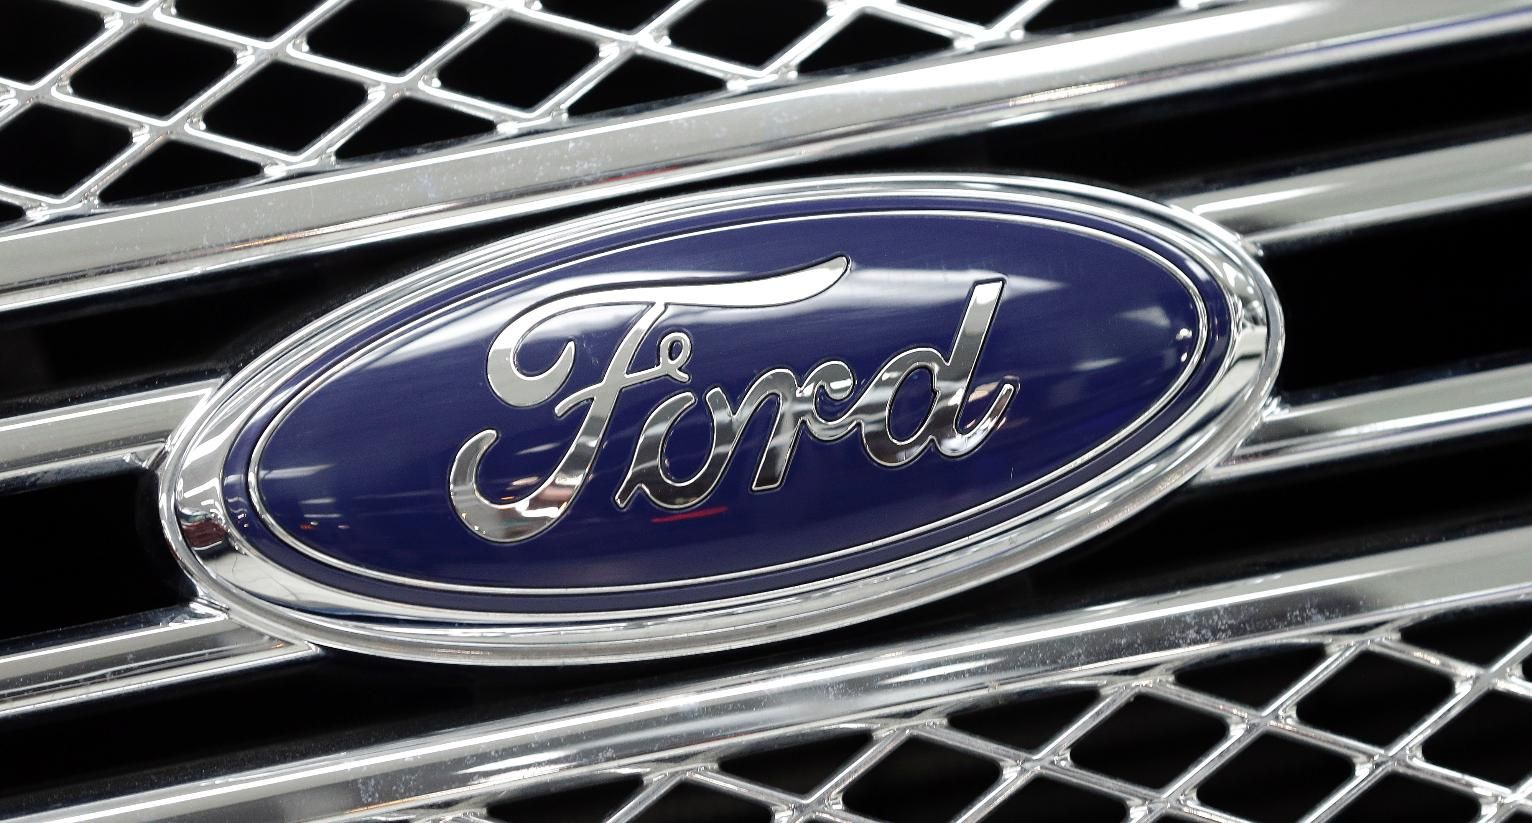 Ford Announces Major Recall Ford motor, Ford motor